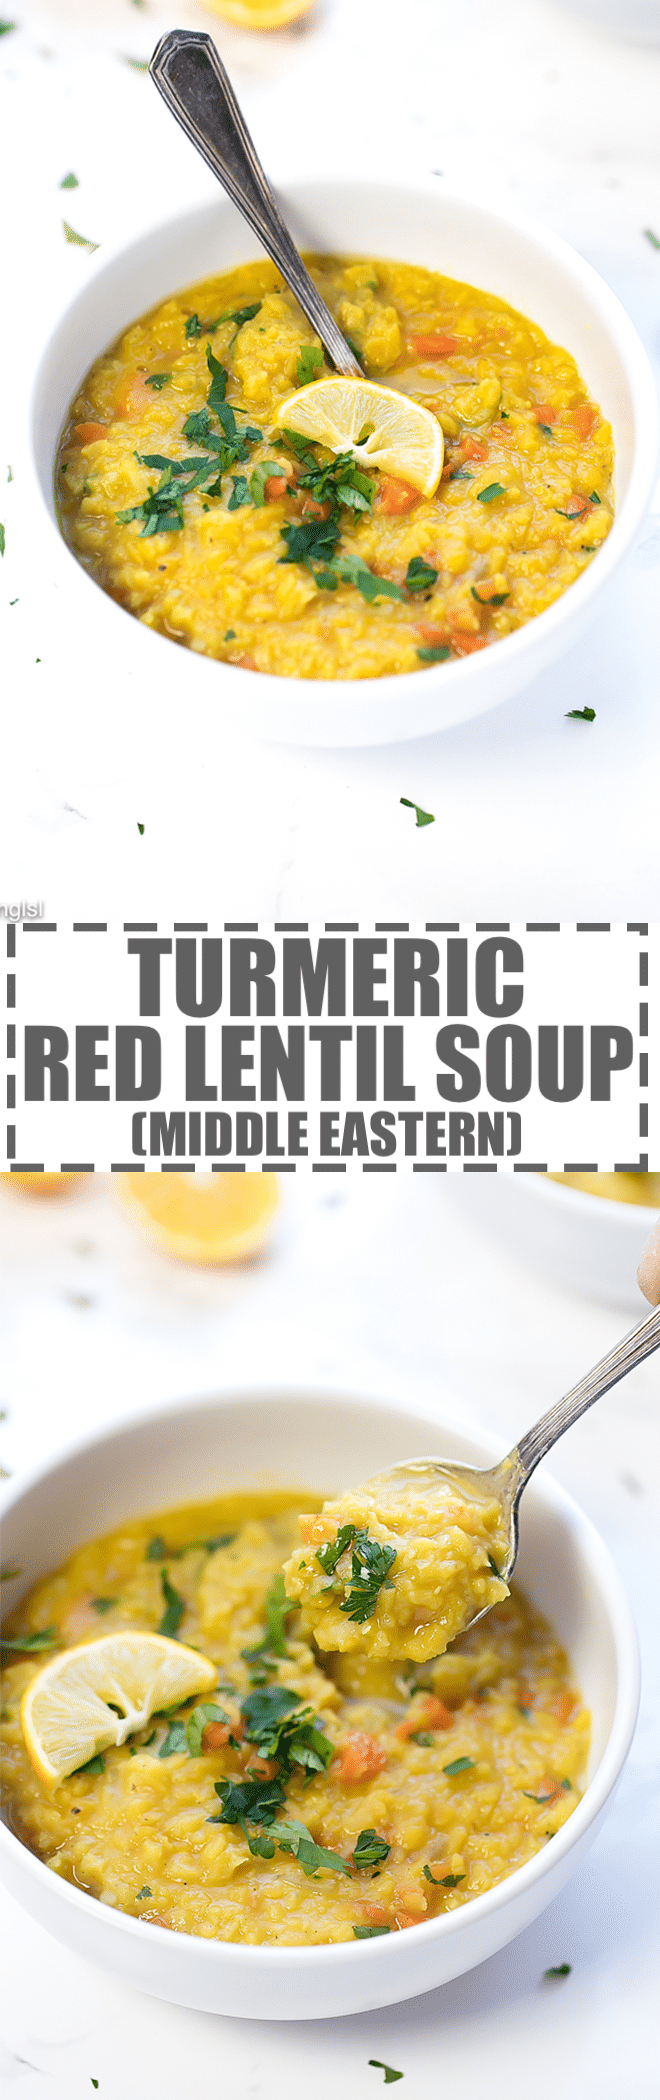 Middle Eastern Lentil Soup Recipe - just a few basic ingredients to make this delicious, flavorful and nutritious soup. Great as a side soup or a light meal. Packed with Middle Eastern flavors, due to the combination of two very distinct spices - turmeric and cumin.